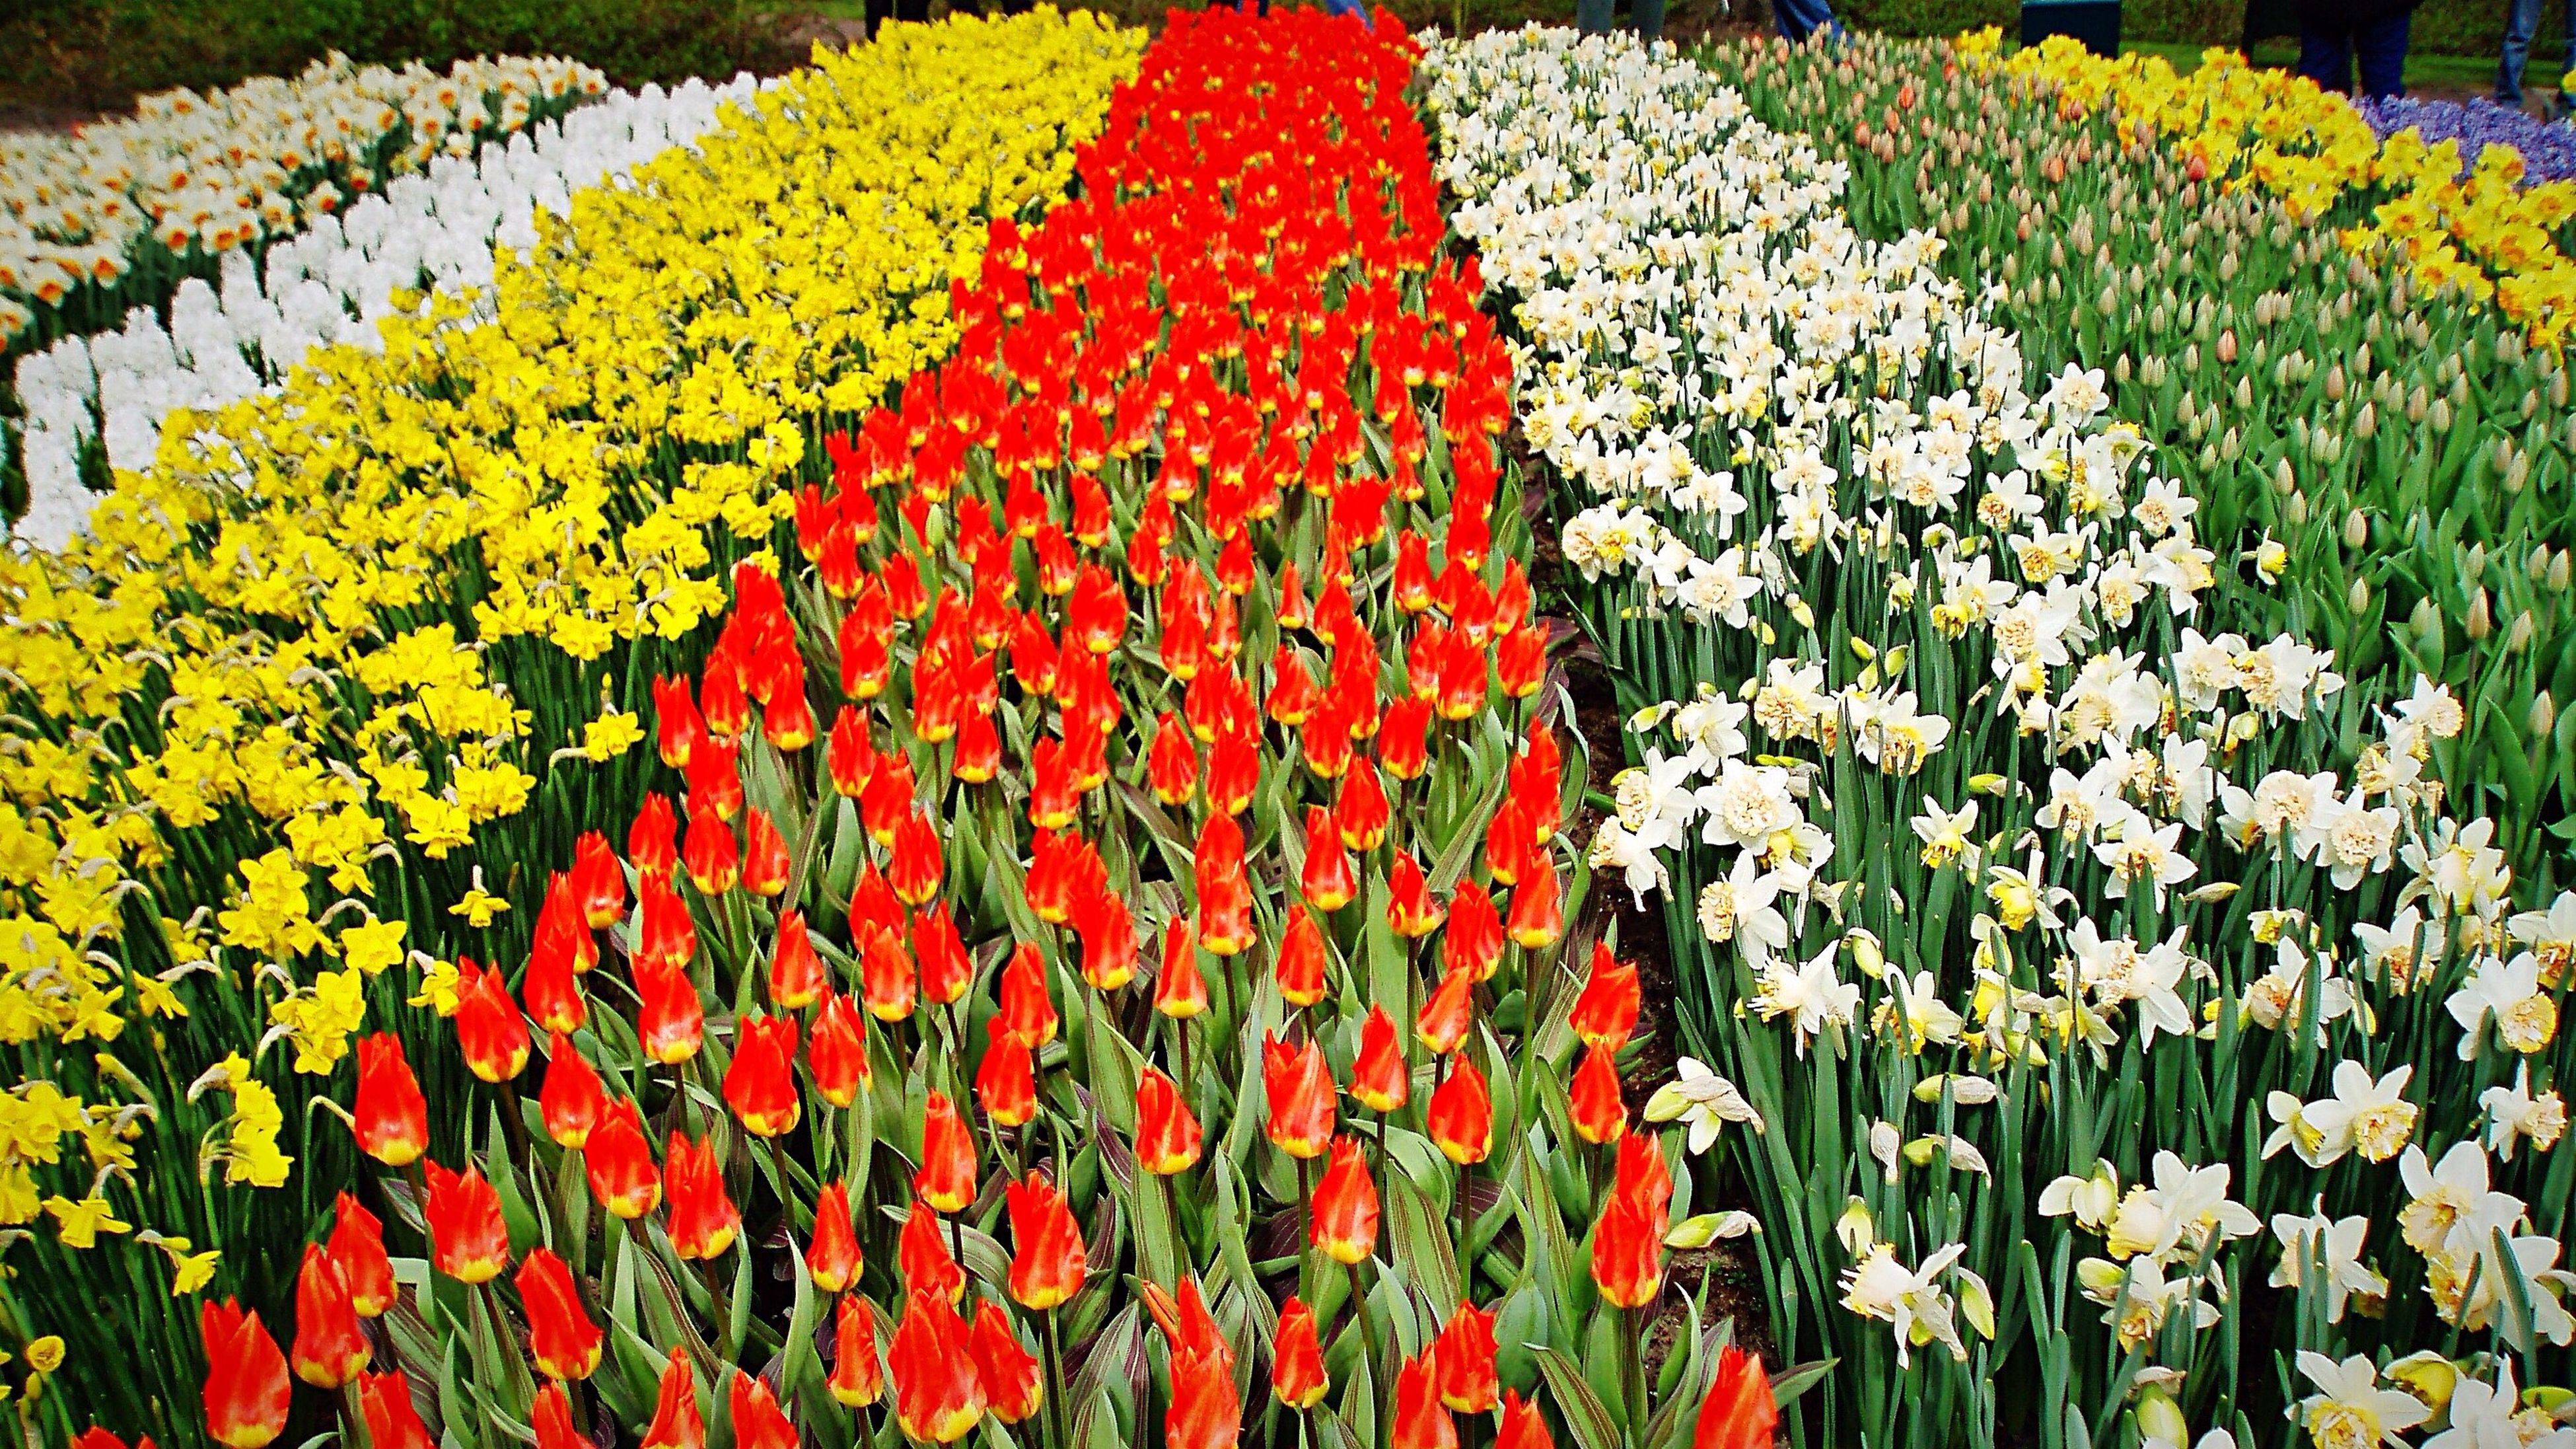 flower, abundance, freshness, growth, red, field, plant, beauty in nature, variation, flowerbed, multi colored, nature, fragility, high angle view, tulip, yellow, petal, day, agriculture, outdoors